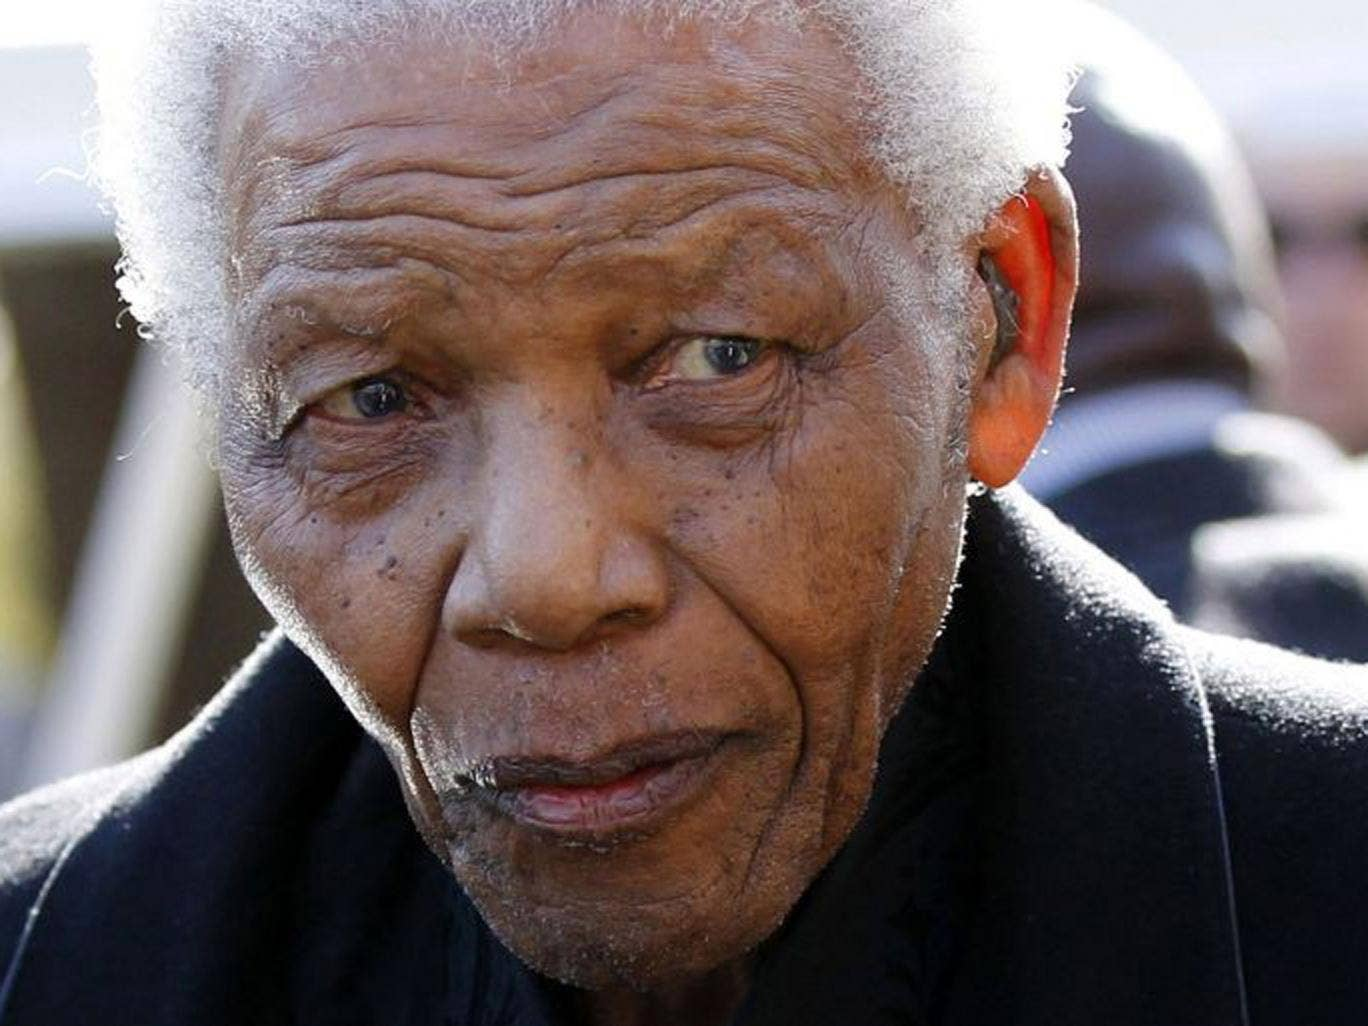 Nelson Mandela is 'responding to treatment' after returning to hospital with lung infection